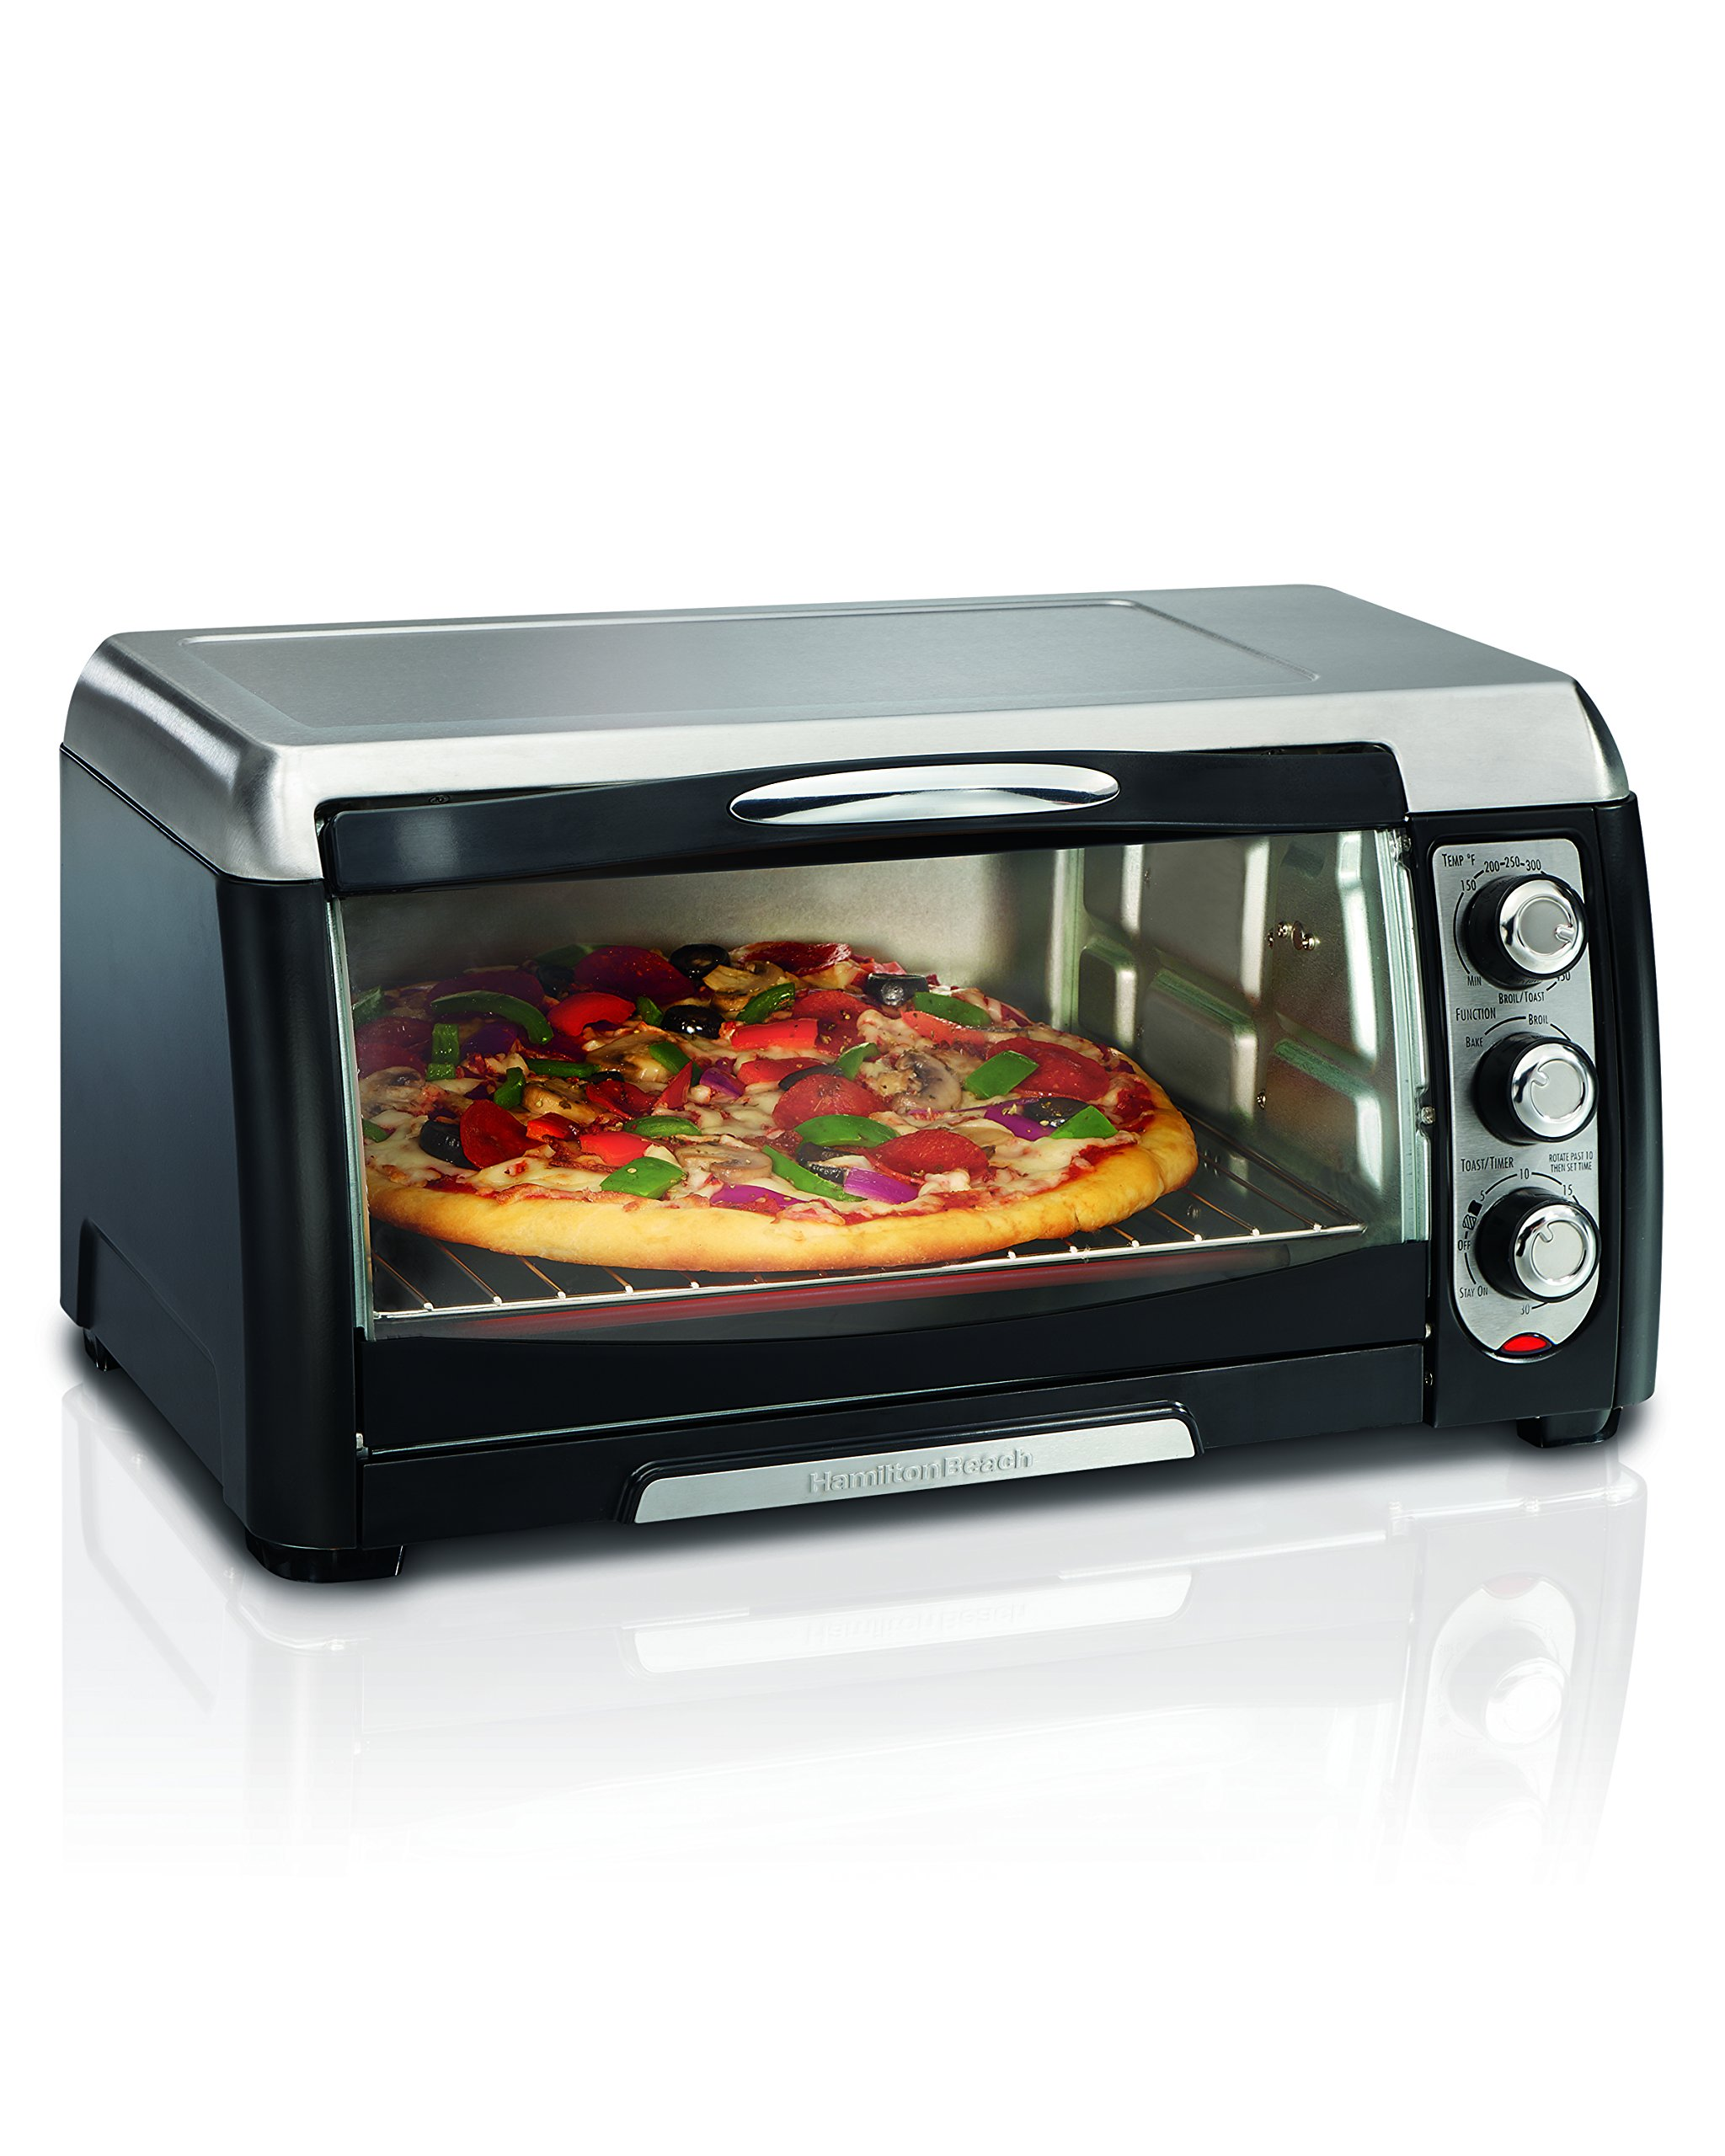 Hamilton Beach 31330 Toaster Oven by Hamilton Beach